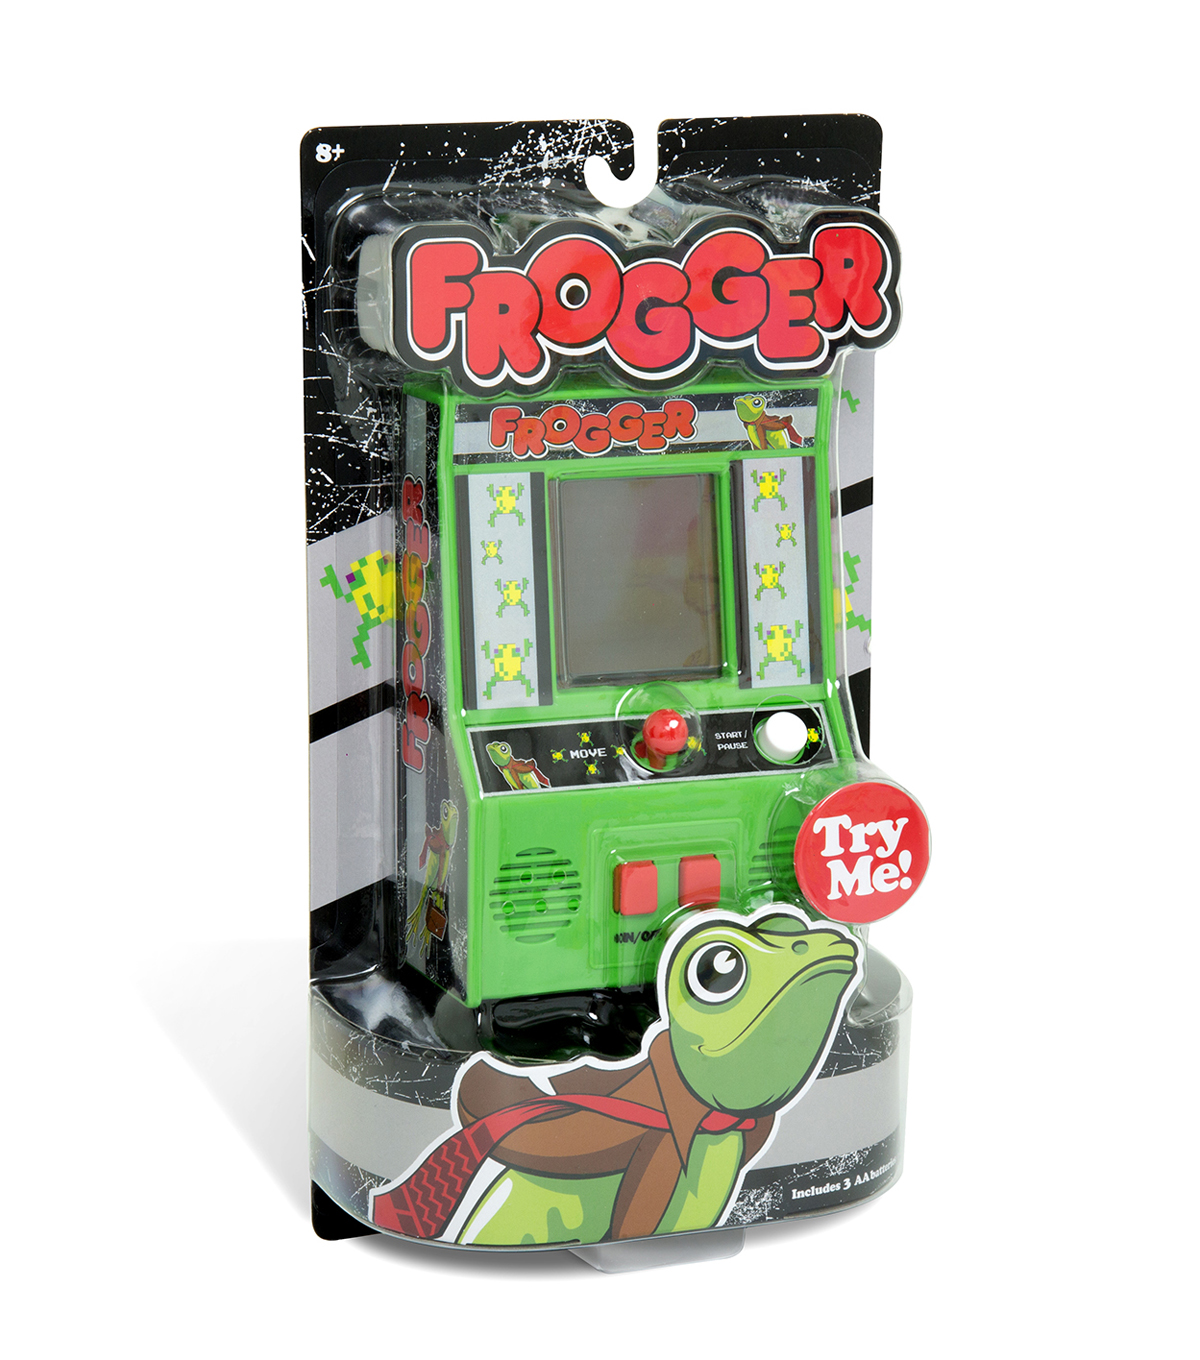 Frogger Miniature Arcade Game